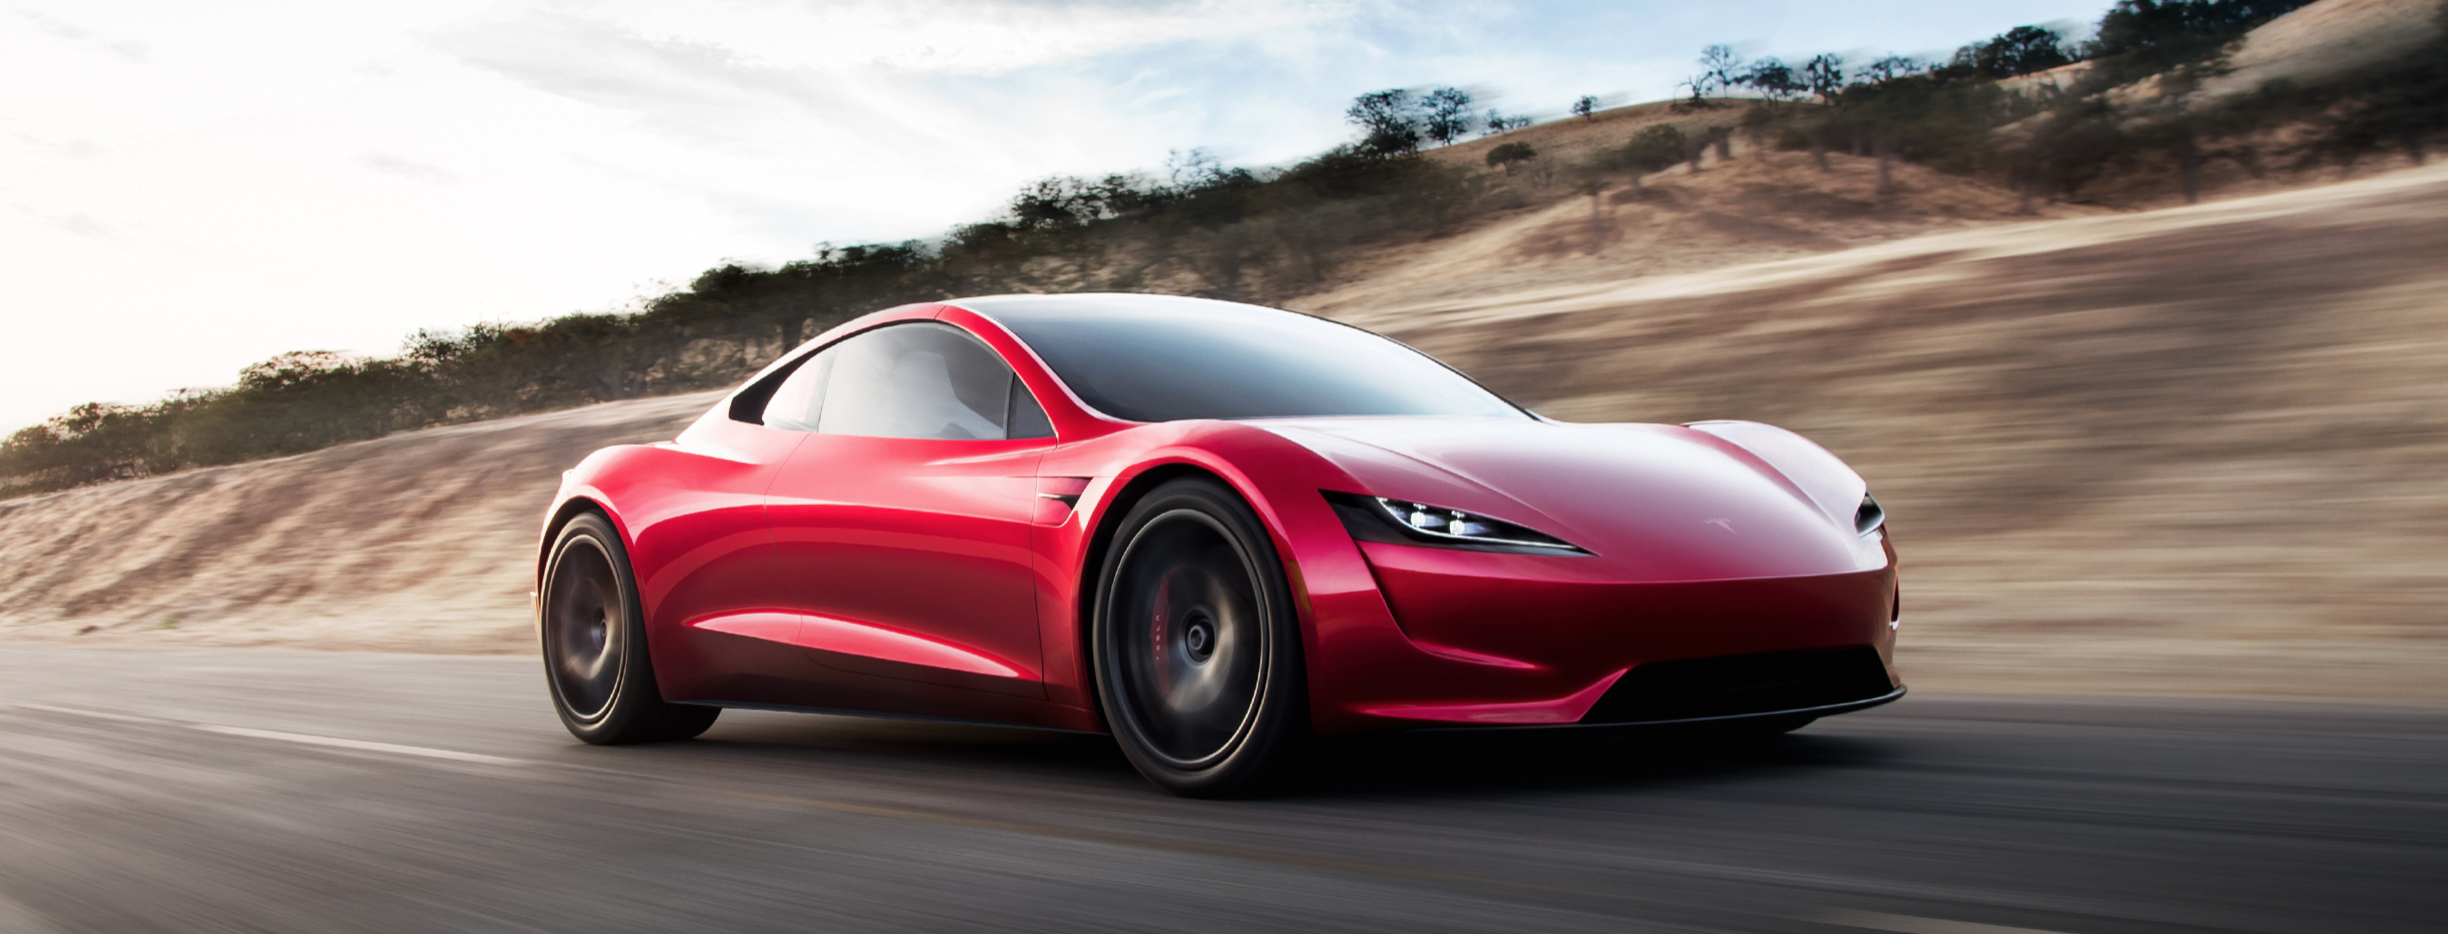 Everything We Know About The Tesla Roadster Elon Musk S Next Gen Supercar